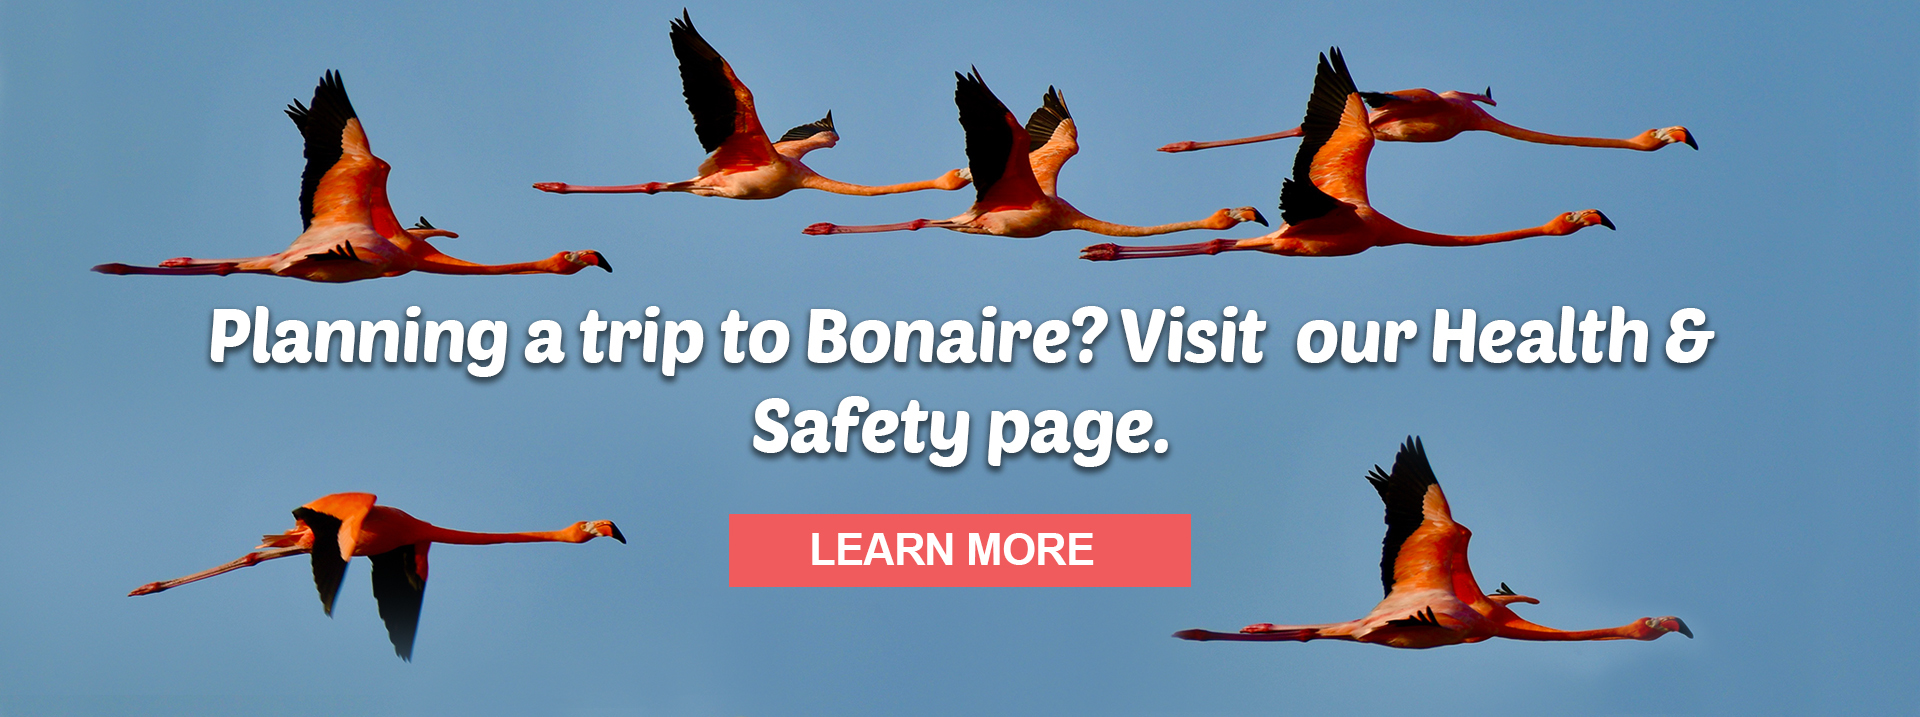 Planning a trip to Bonaire? Visit our Health & Saftey page. Learn More